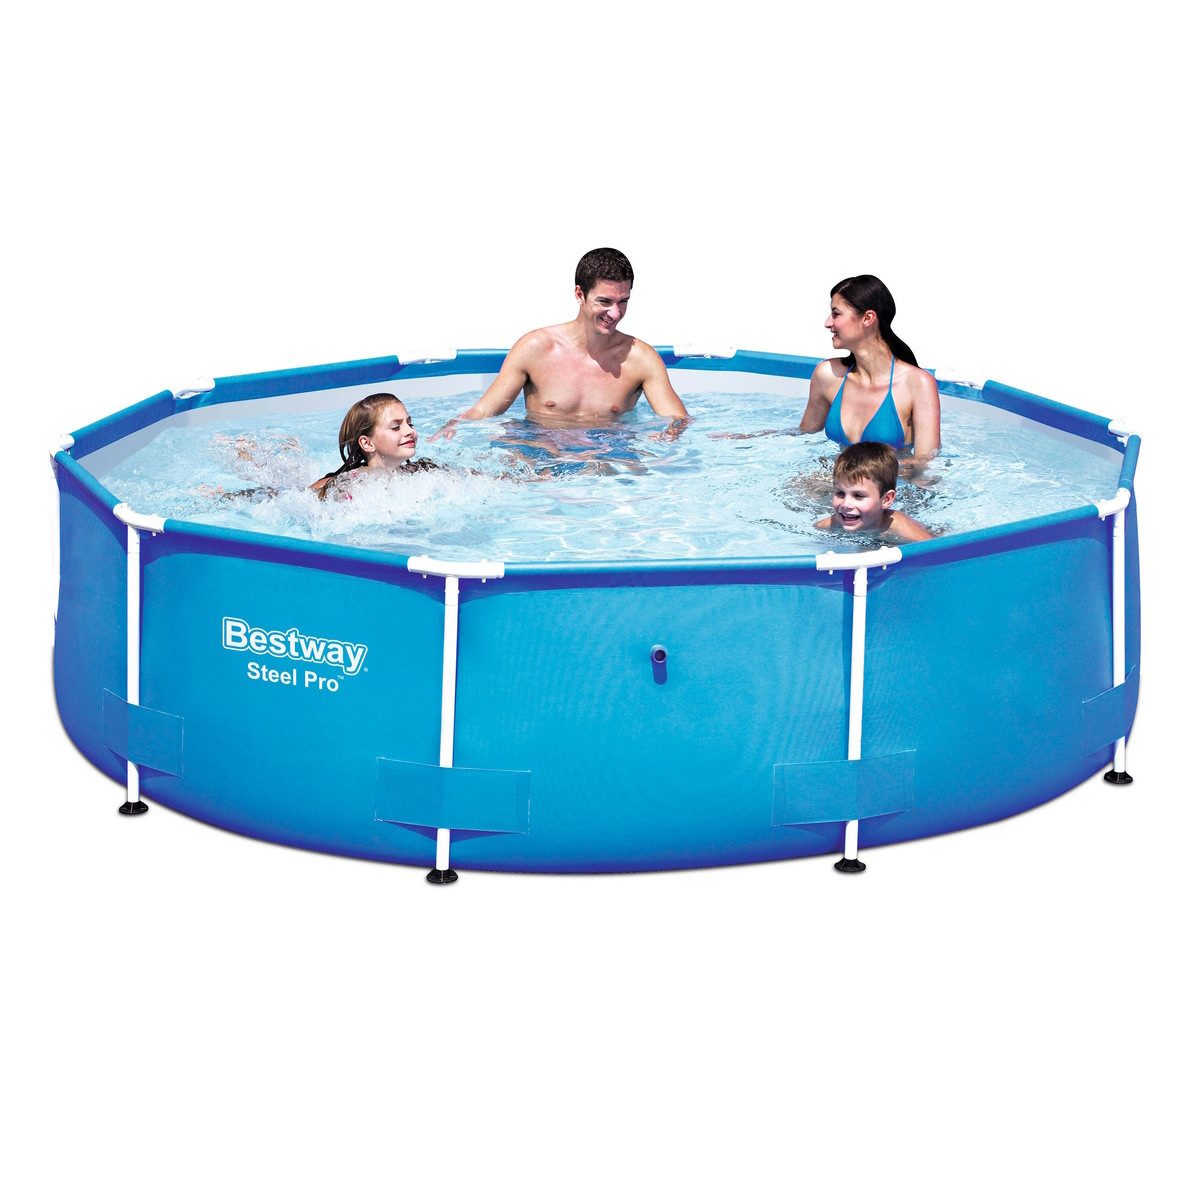 Piscina autoportante desmontable de pvc azul lola home for Piscinas de pvc precios